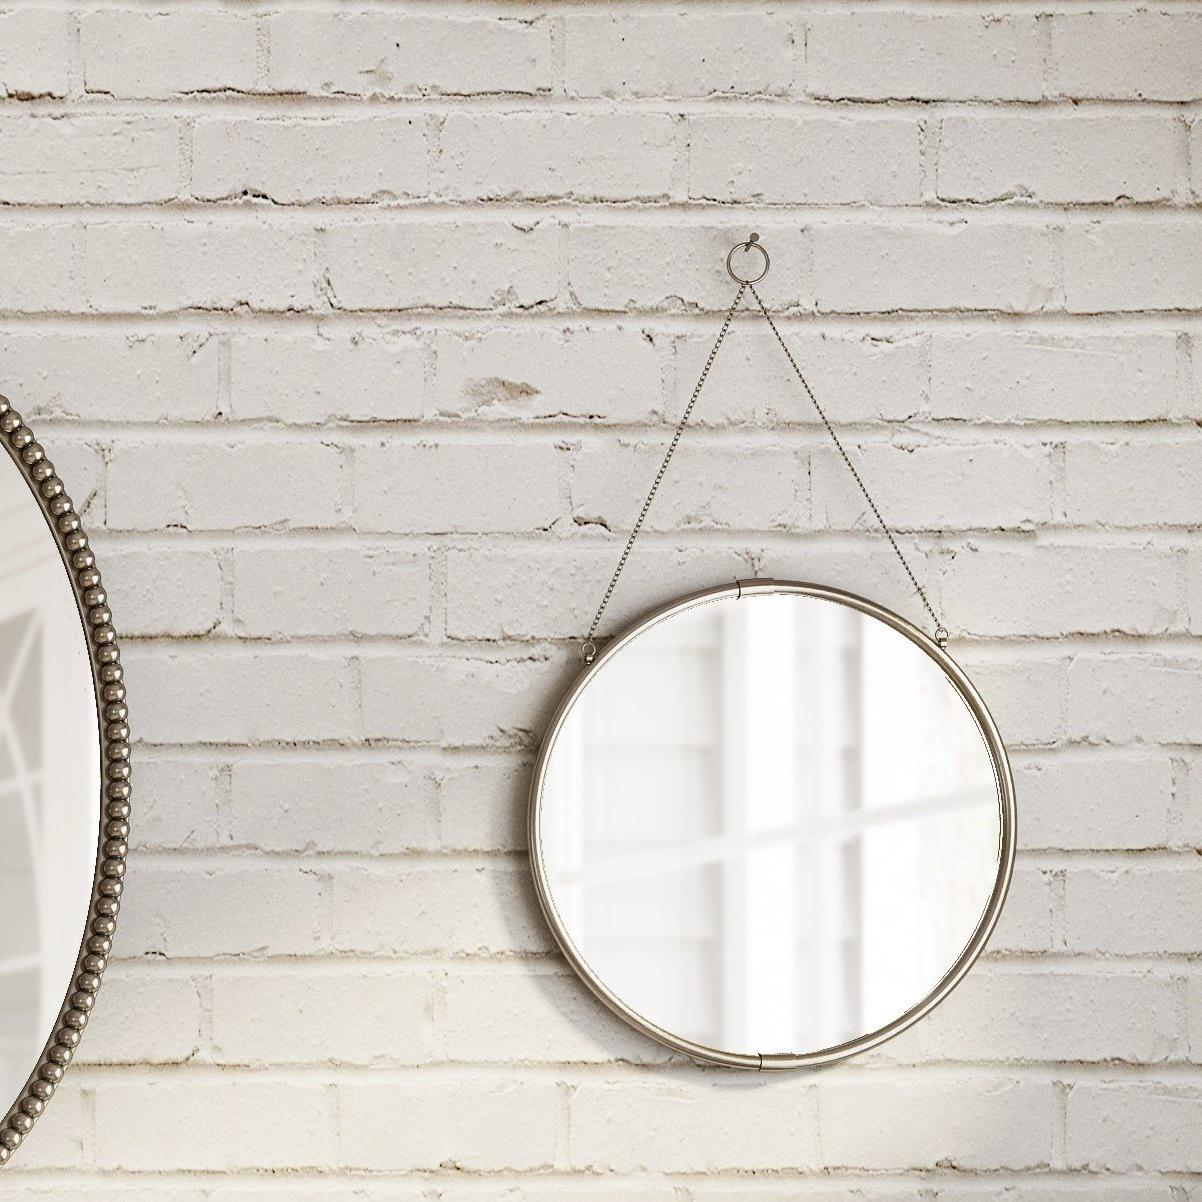 Brea Decorative Round Hanging Modern & Contemporary Wall Mirror Inside Most Up To Date Modern Decorative Wall Mirrors (View 17 of 20)